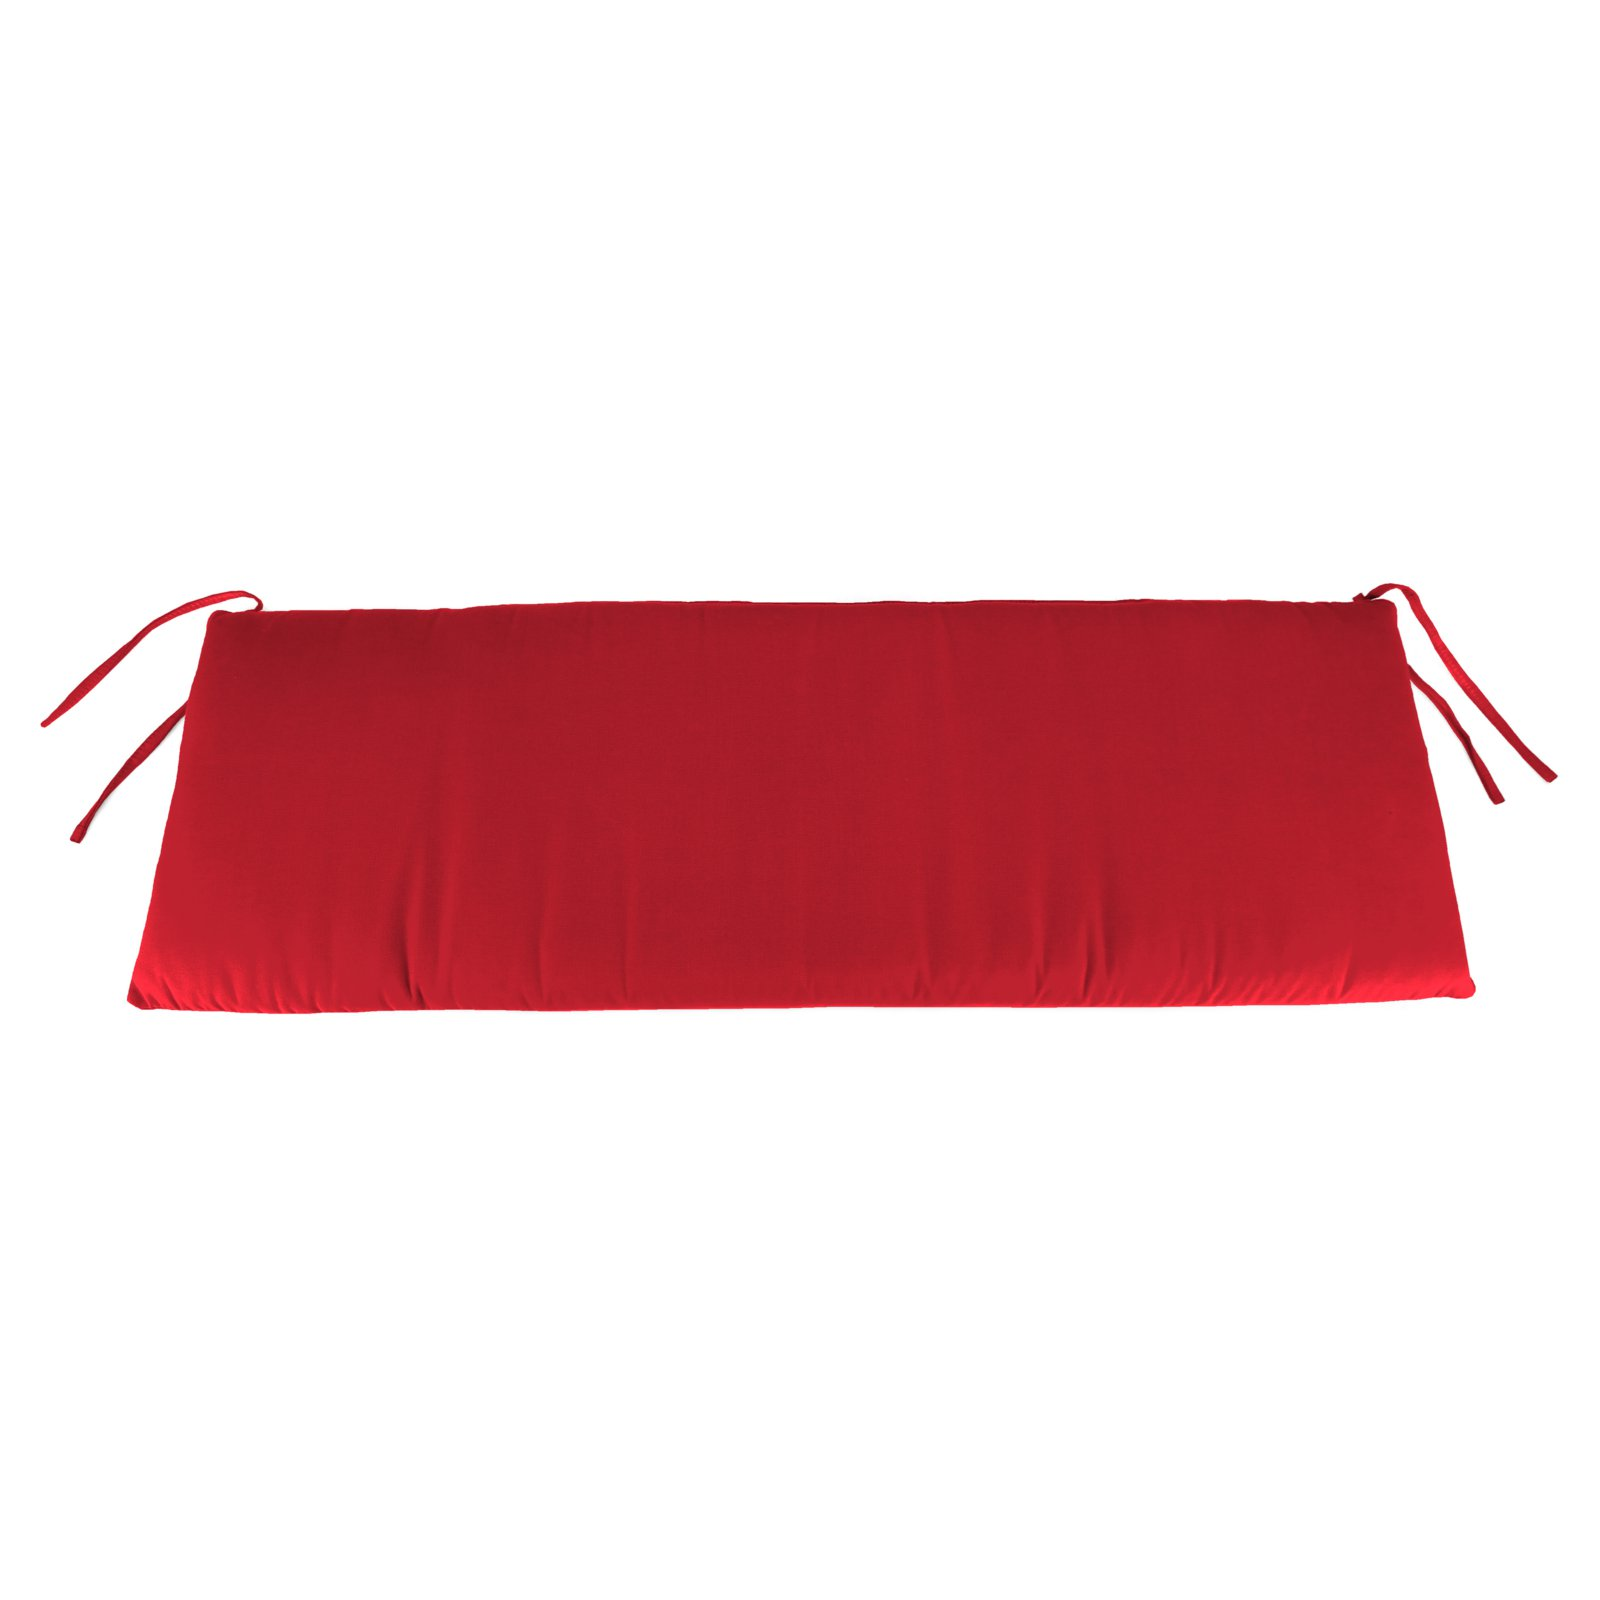 Jordan Manufacturing Sunbrella 48 X 18 In Bench Cushion Canvas Jockey Red